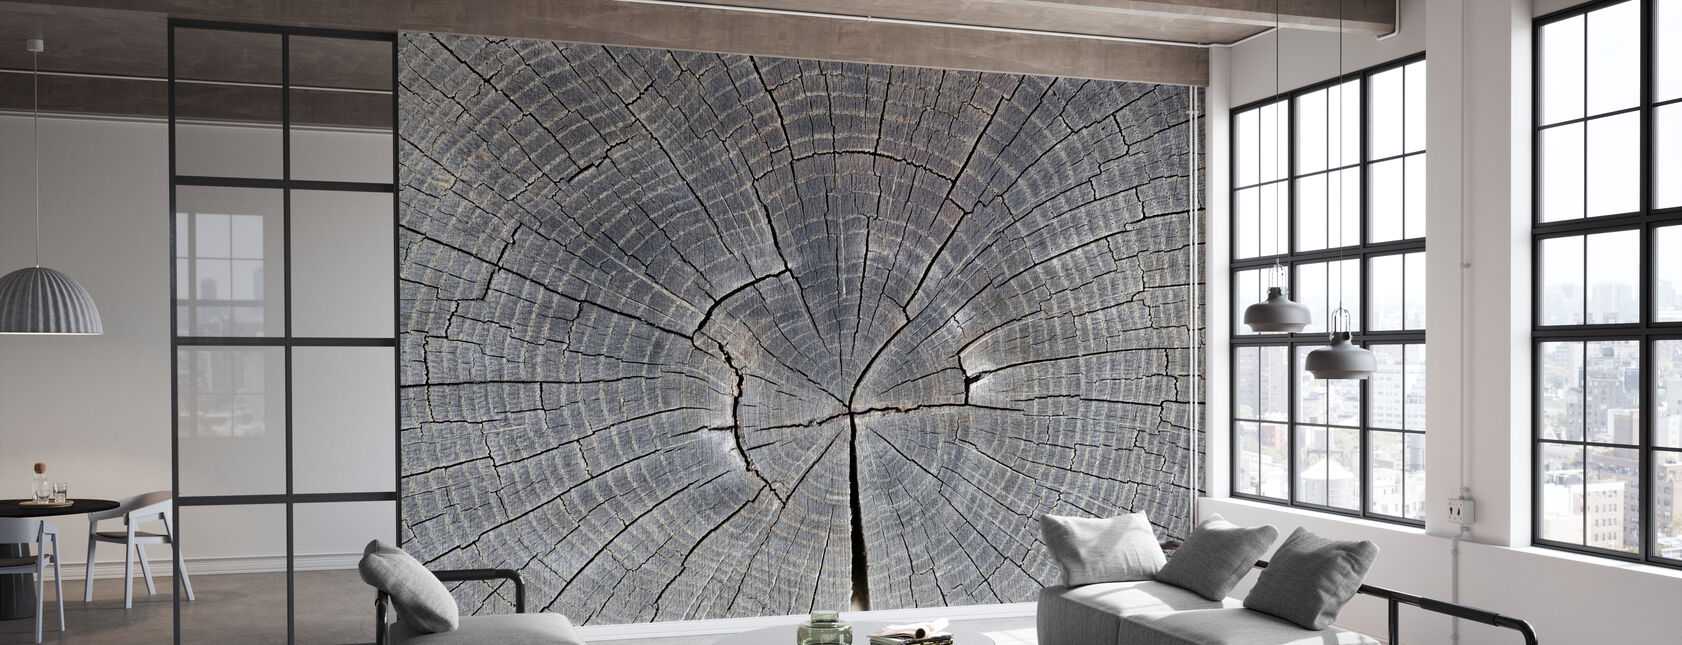 Tree Trunk Showing Growth Rings - Wallpaper - Office